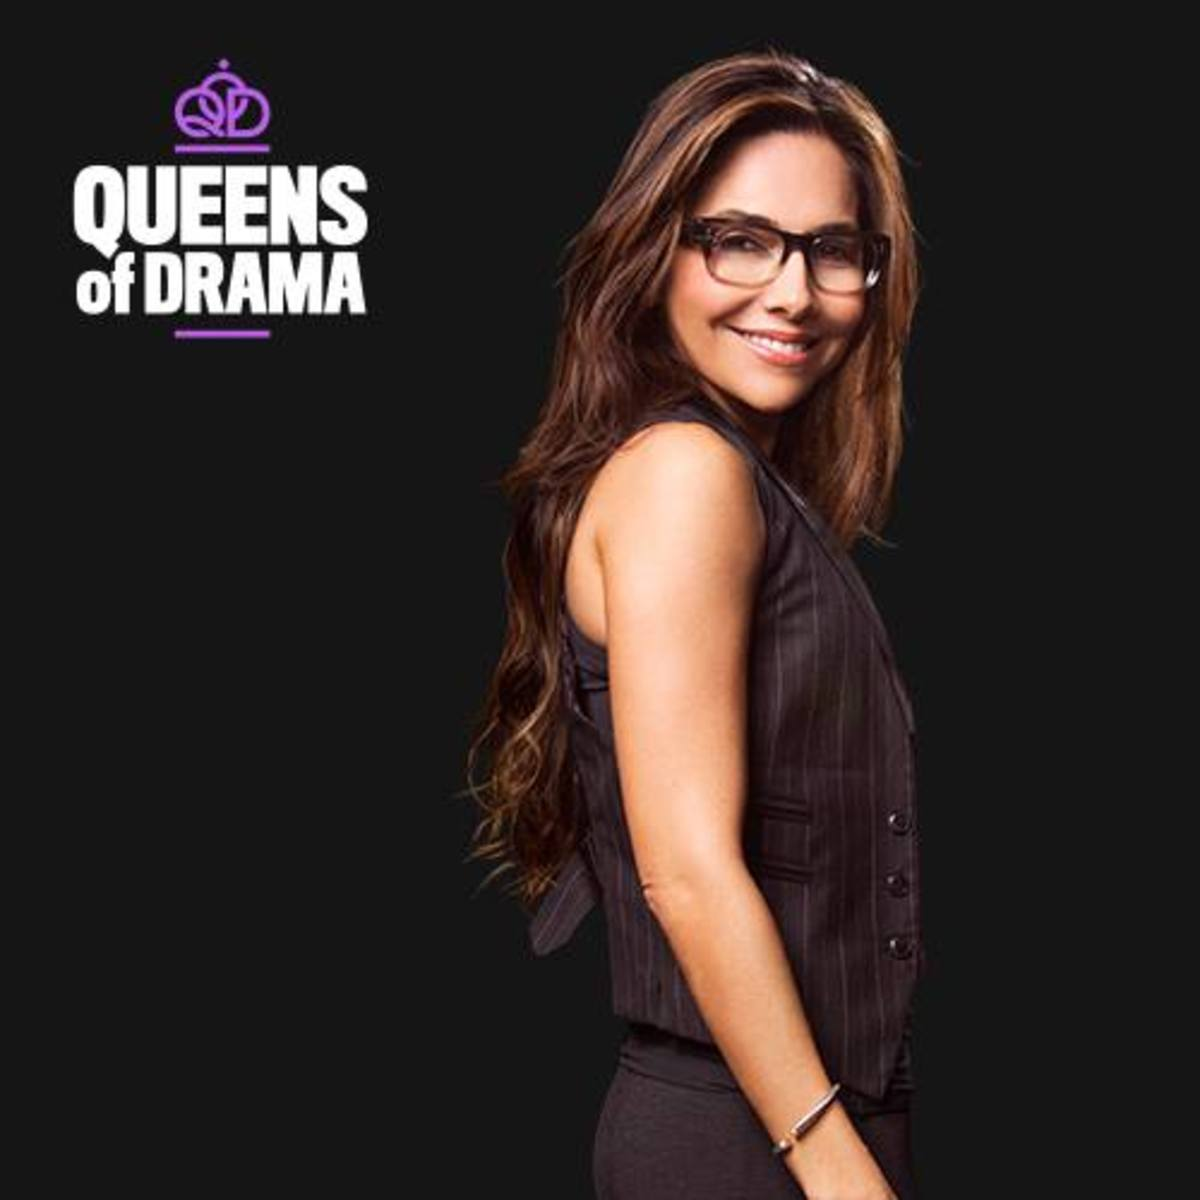 INTERVIEW: Vanessa Marcil Keeps It Real About Pop's Queens ...